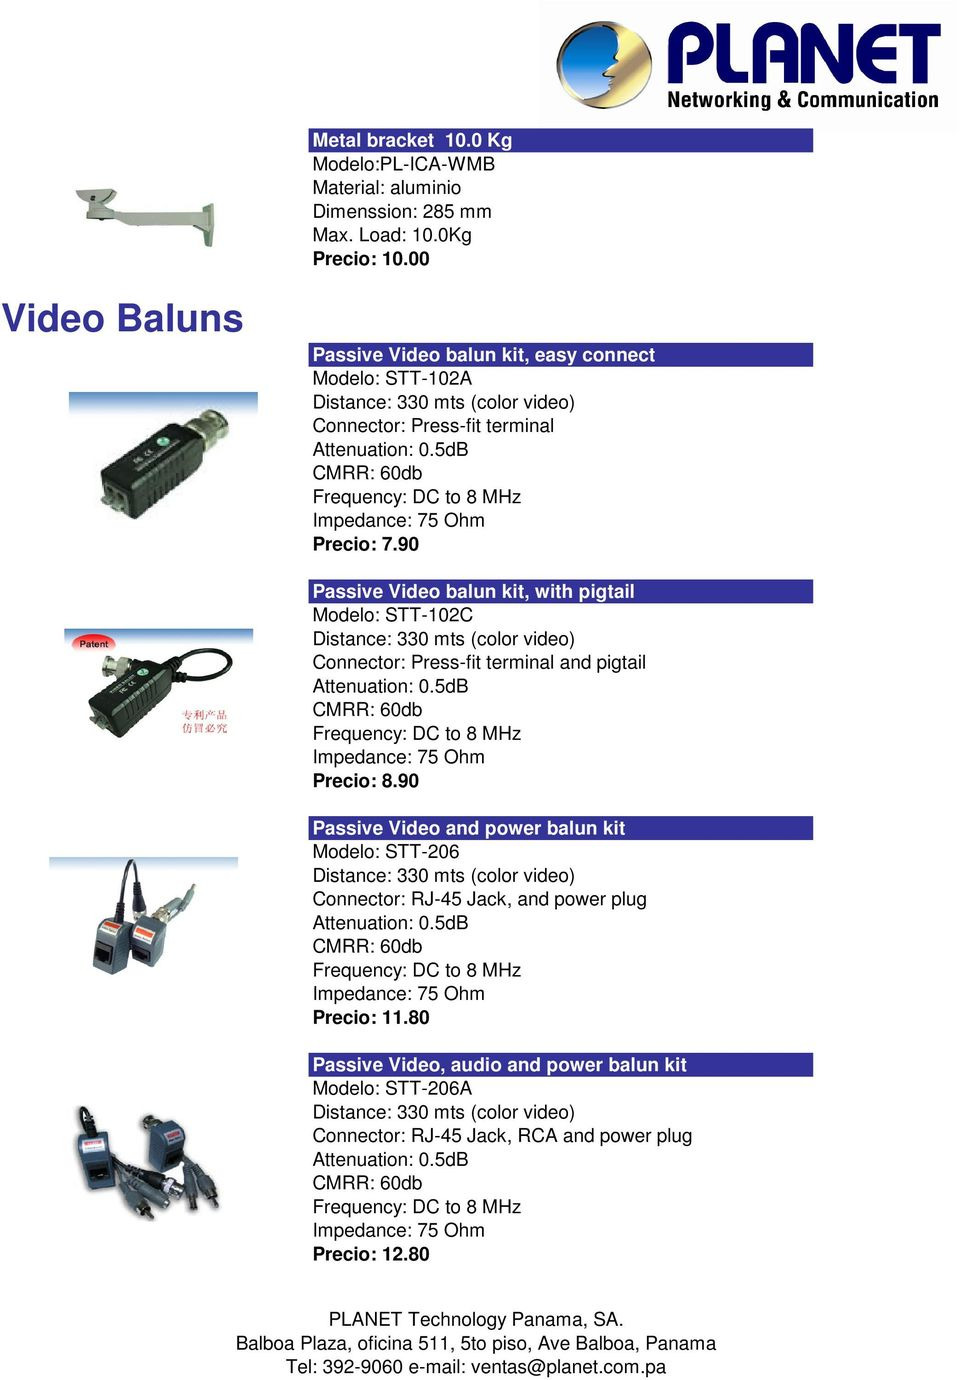 90 Passive Video balun kit, with pigtail Modelo: STT-102C Connector: Press-fit terminal and pigtail Precio: 8.